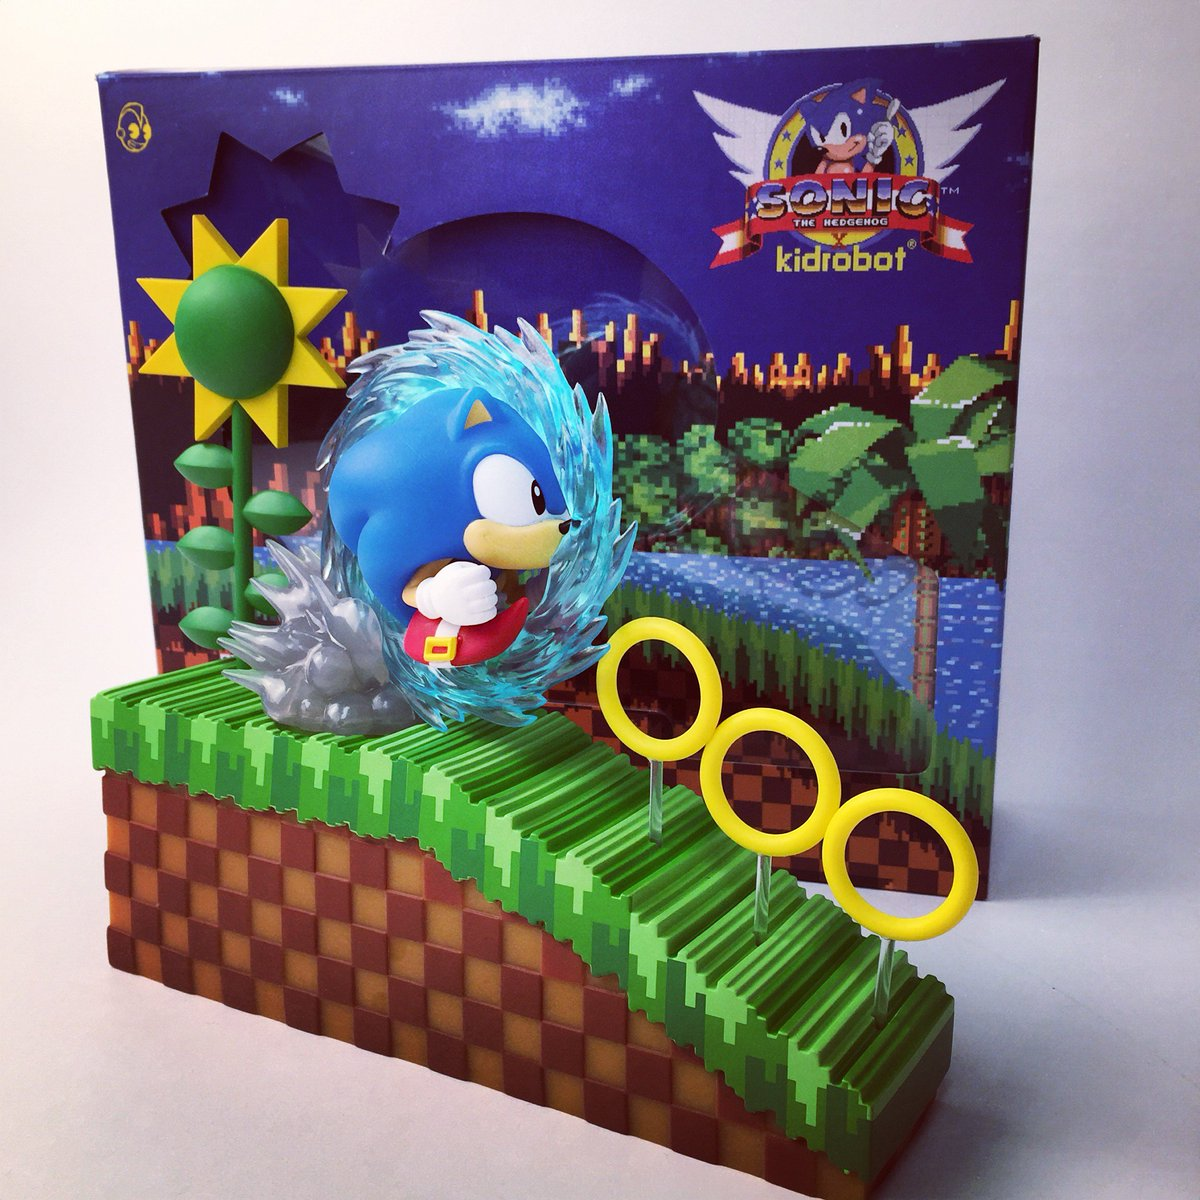 Kidrobot On Twitter Our Sonic The Hedgehog Medium Figure Will Be On Display Tonight At The Sonic The Hedgehog 25th Anniversary Party